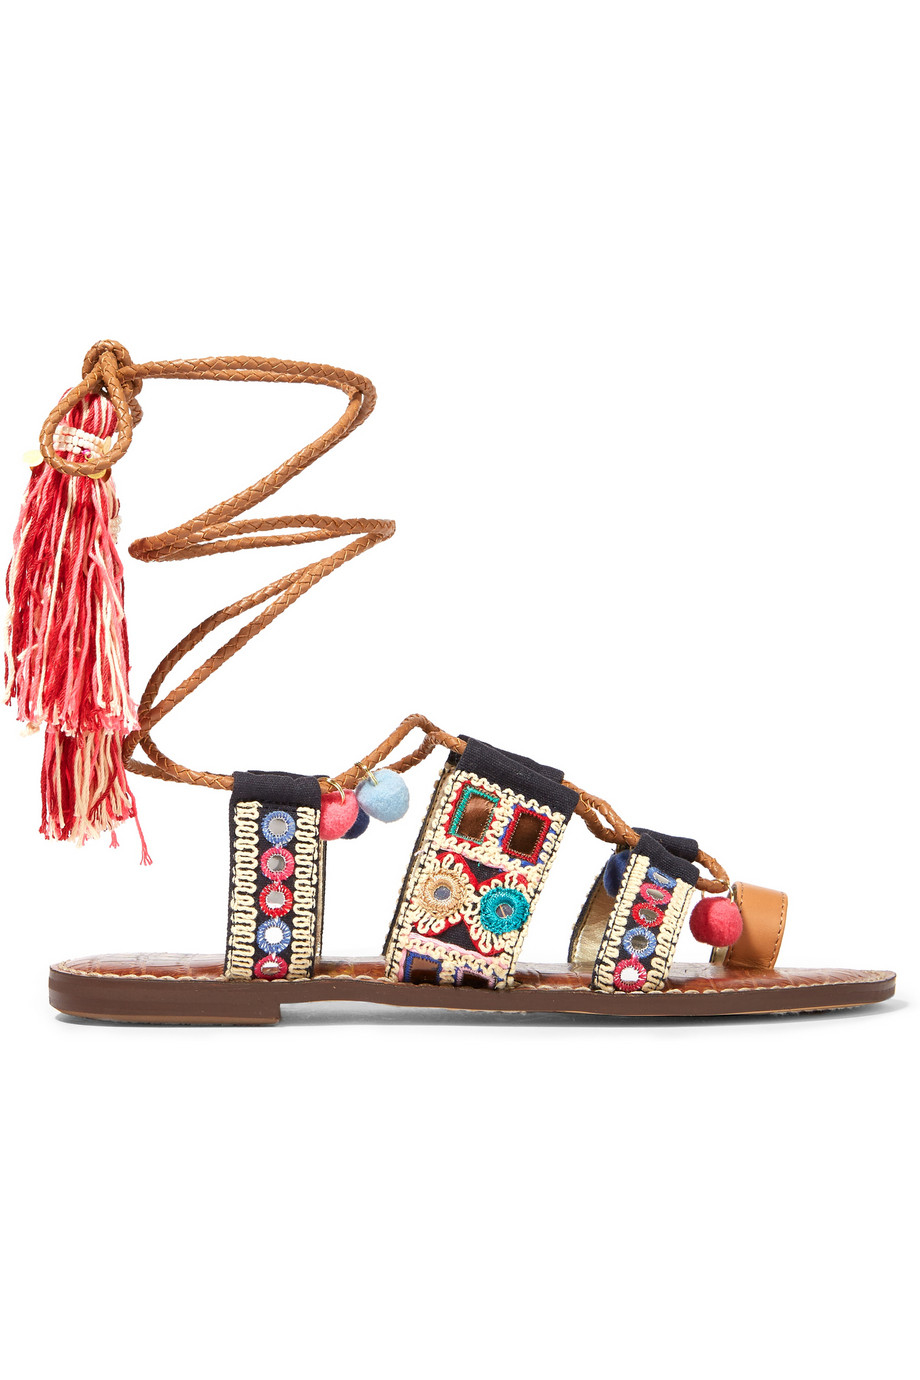 0dff6b7a150 Sam Edelman Gretchen Embroidered Canvas And Leather Sandals in Brown ...